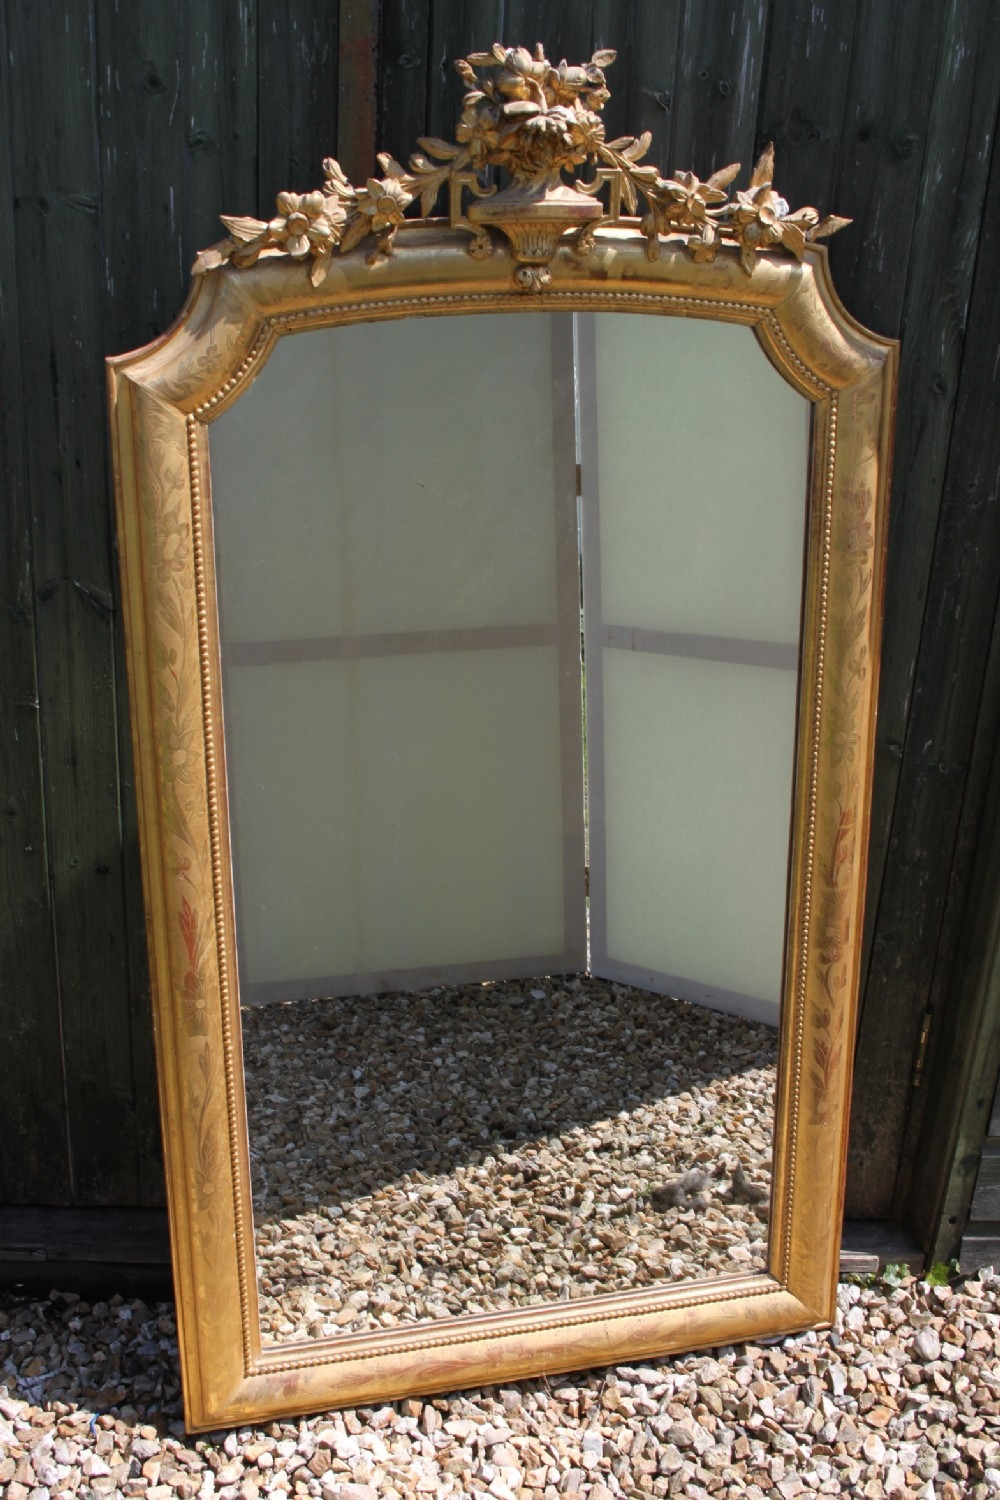 Antique Gilt Mirror 280421 Sellingantiquescouk Intended For Antique Gilt Mirrors (Image 7 of 15)